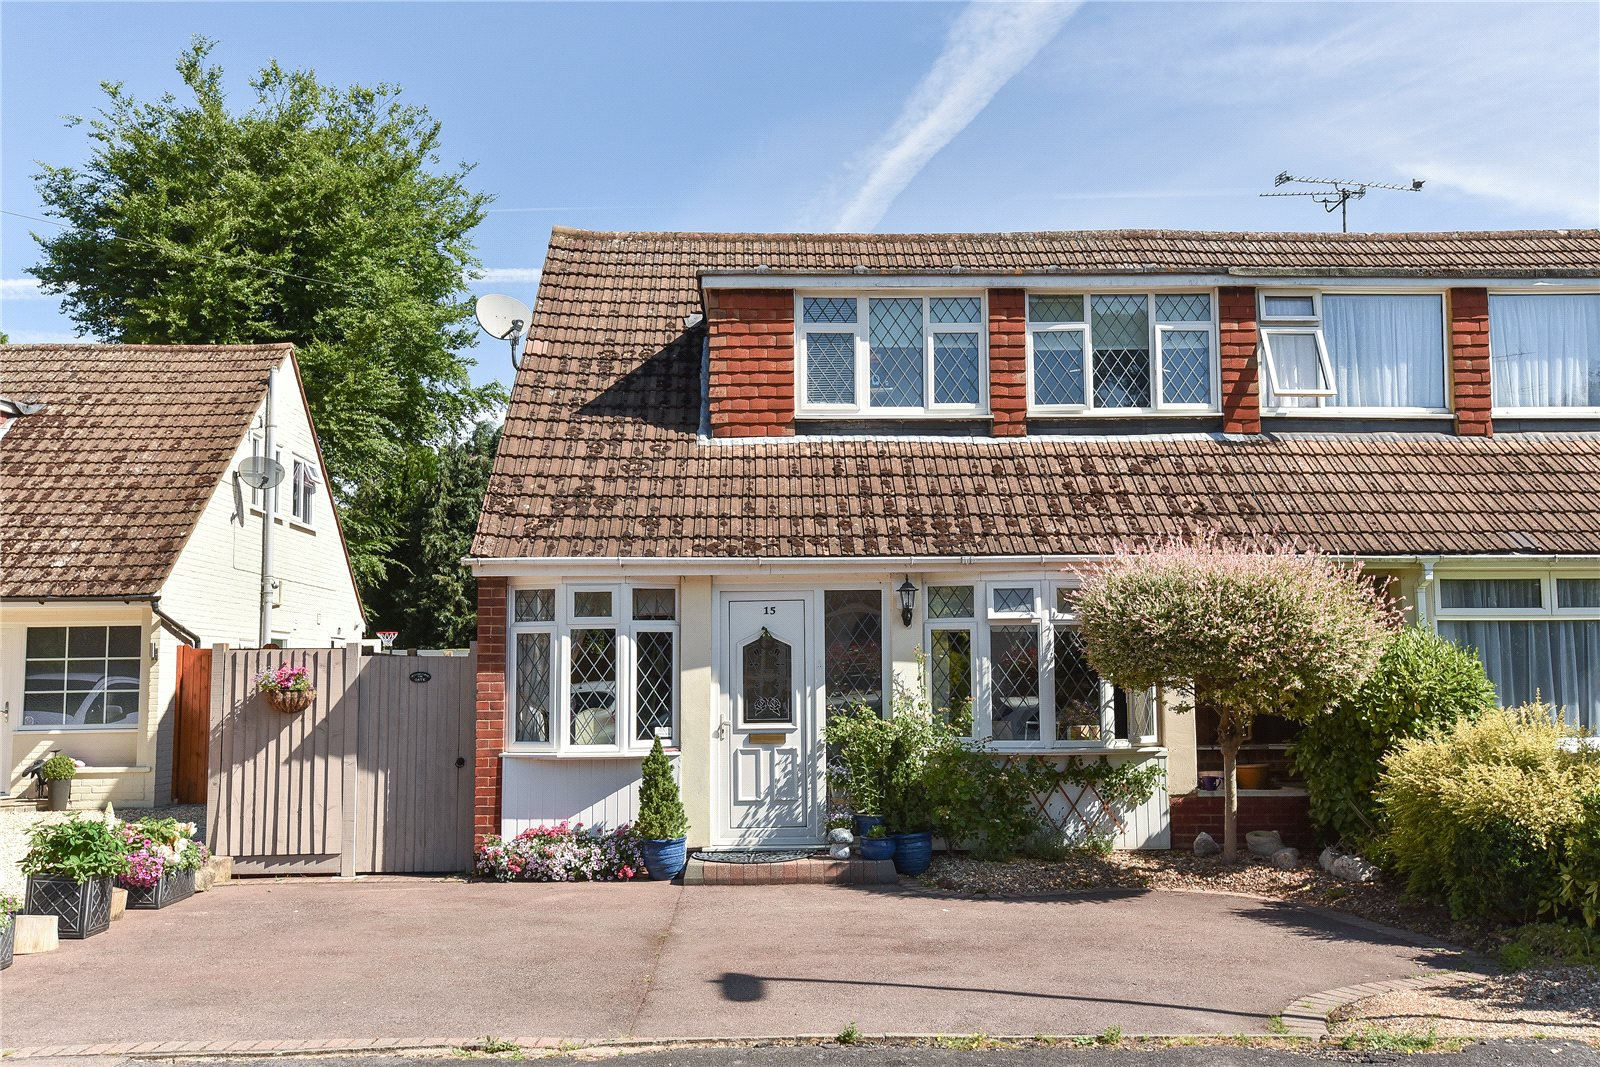 3 Bedrooms Semi Detached House for sale in Martins Close, Blackwater, Camberley, GU17